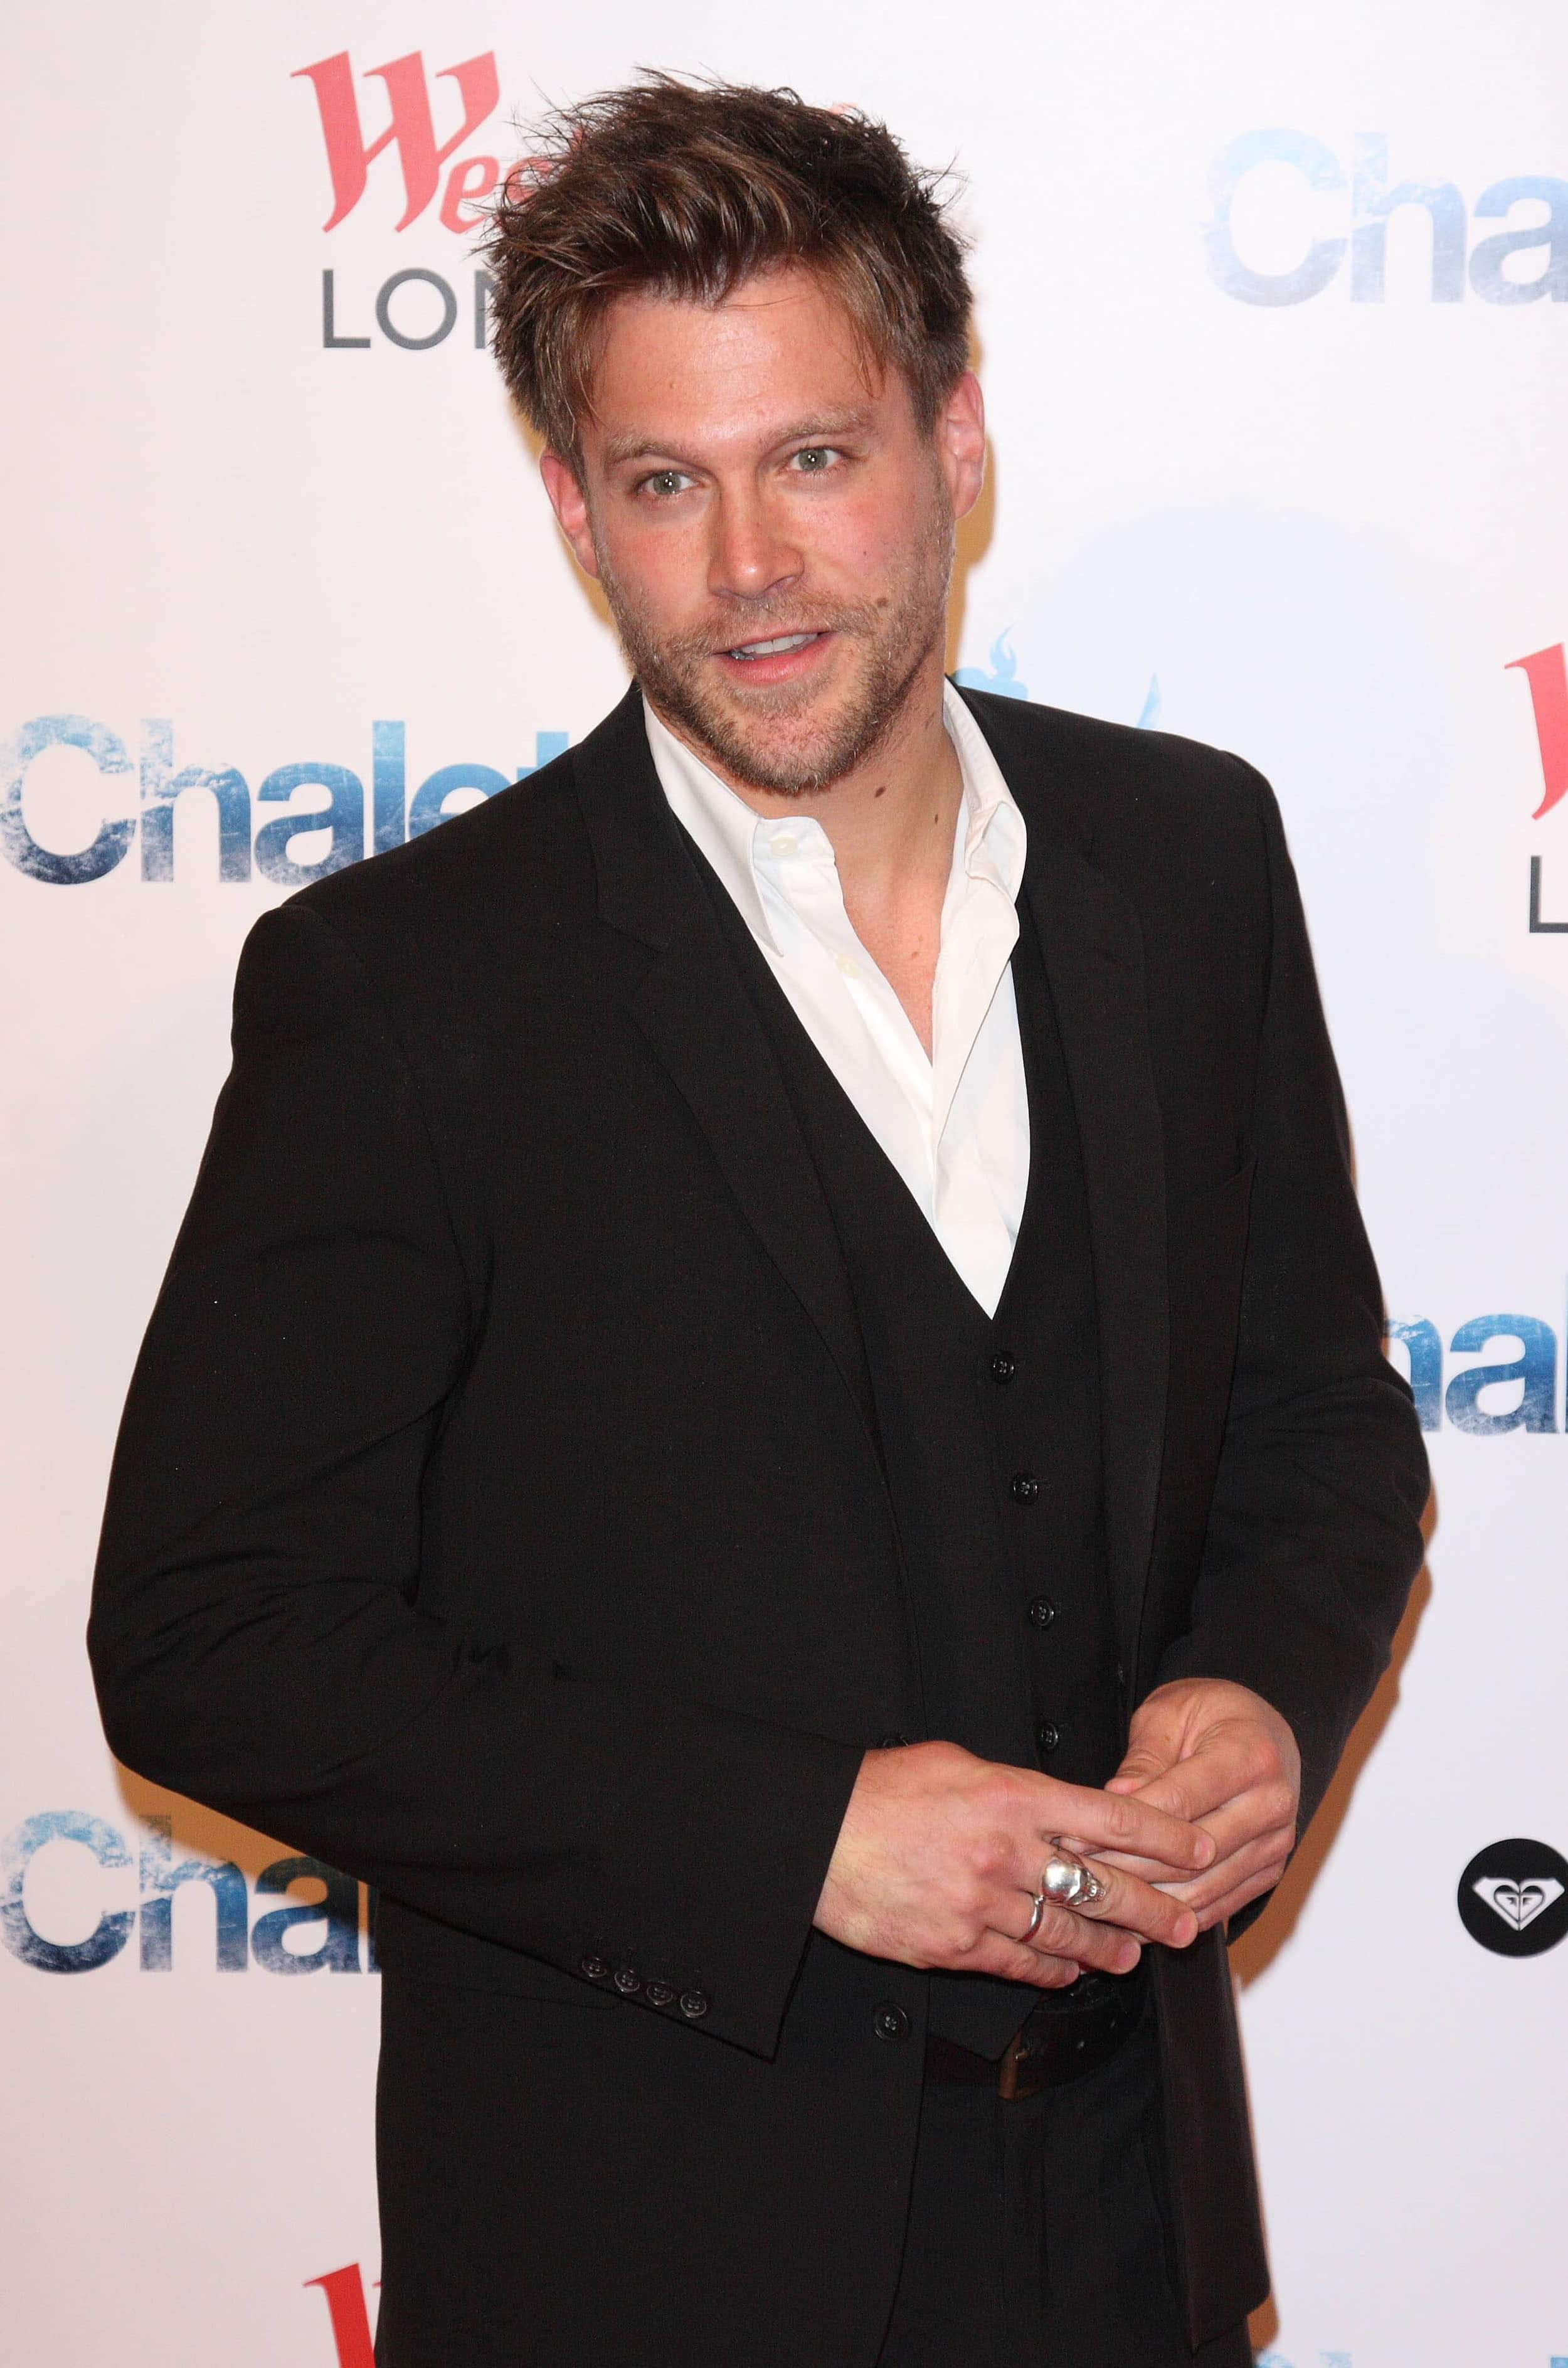 Ken duken - &;chalet girl&; world premiere - arrivals